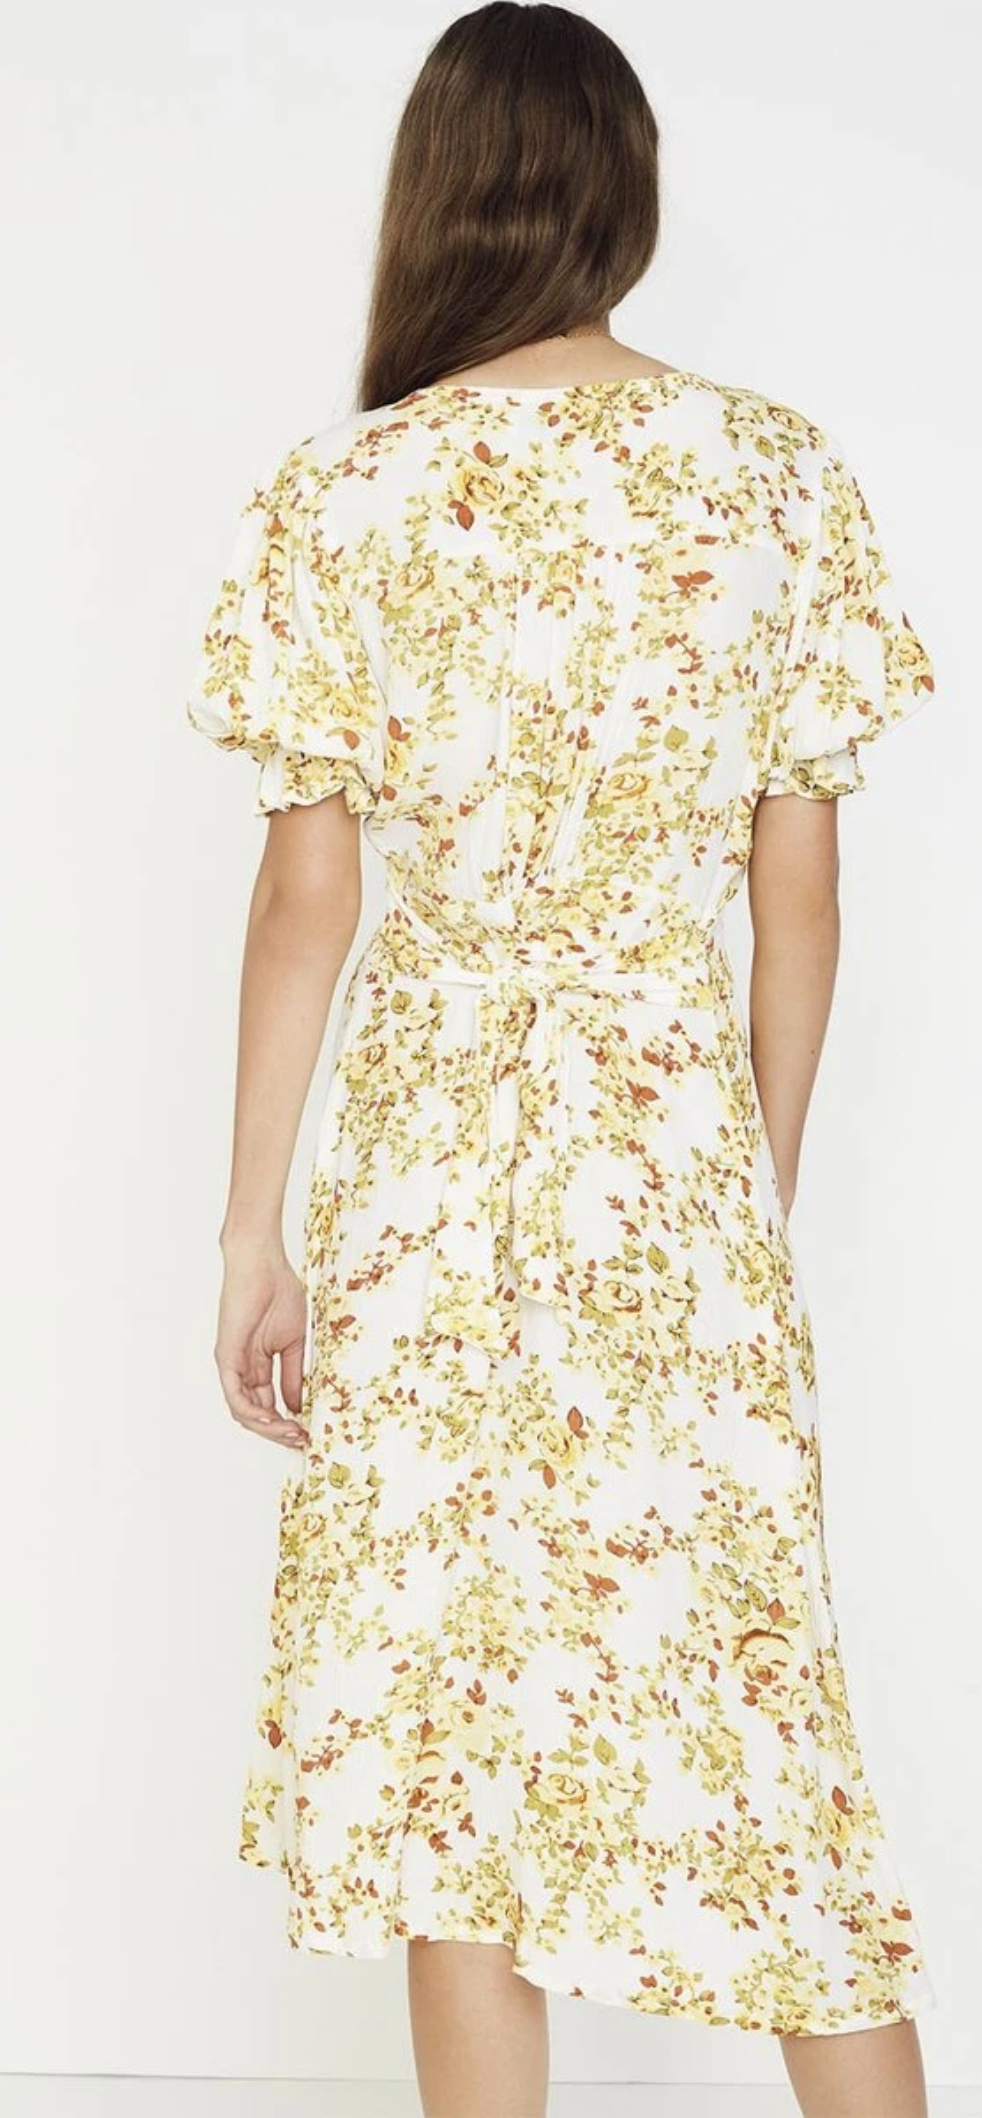 Faithfull Rafa Midi Dress - Goldie Floral